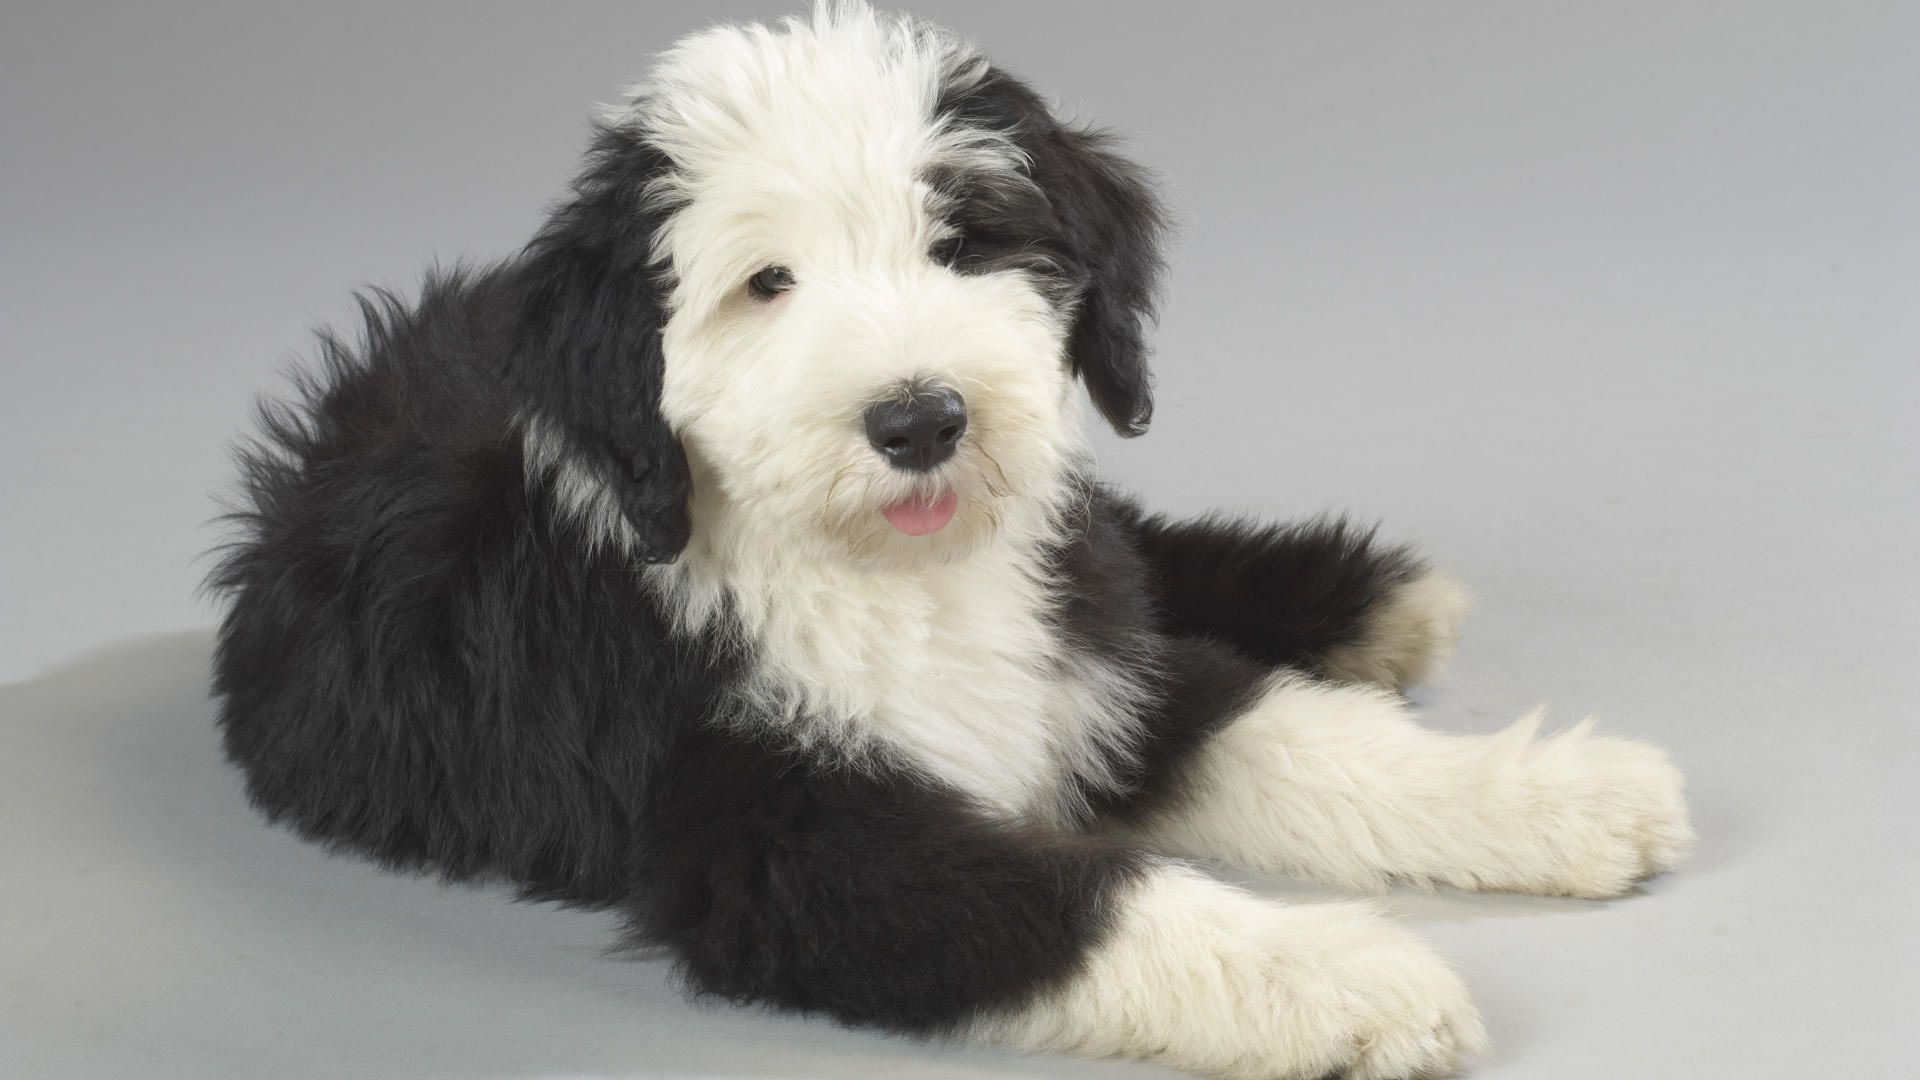 Old English Sheepdog - My Doggy Rocks Bearded Collie Coat